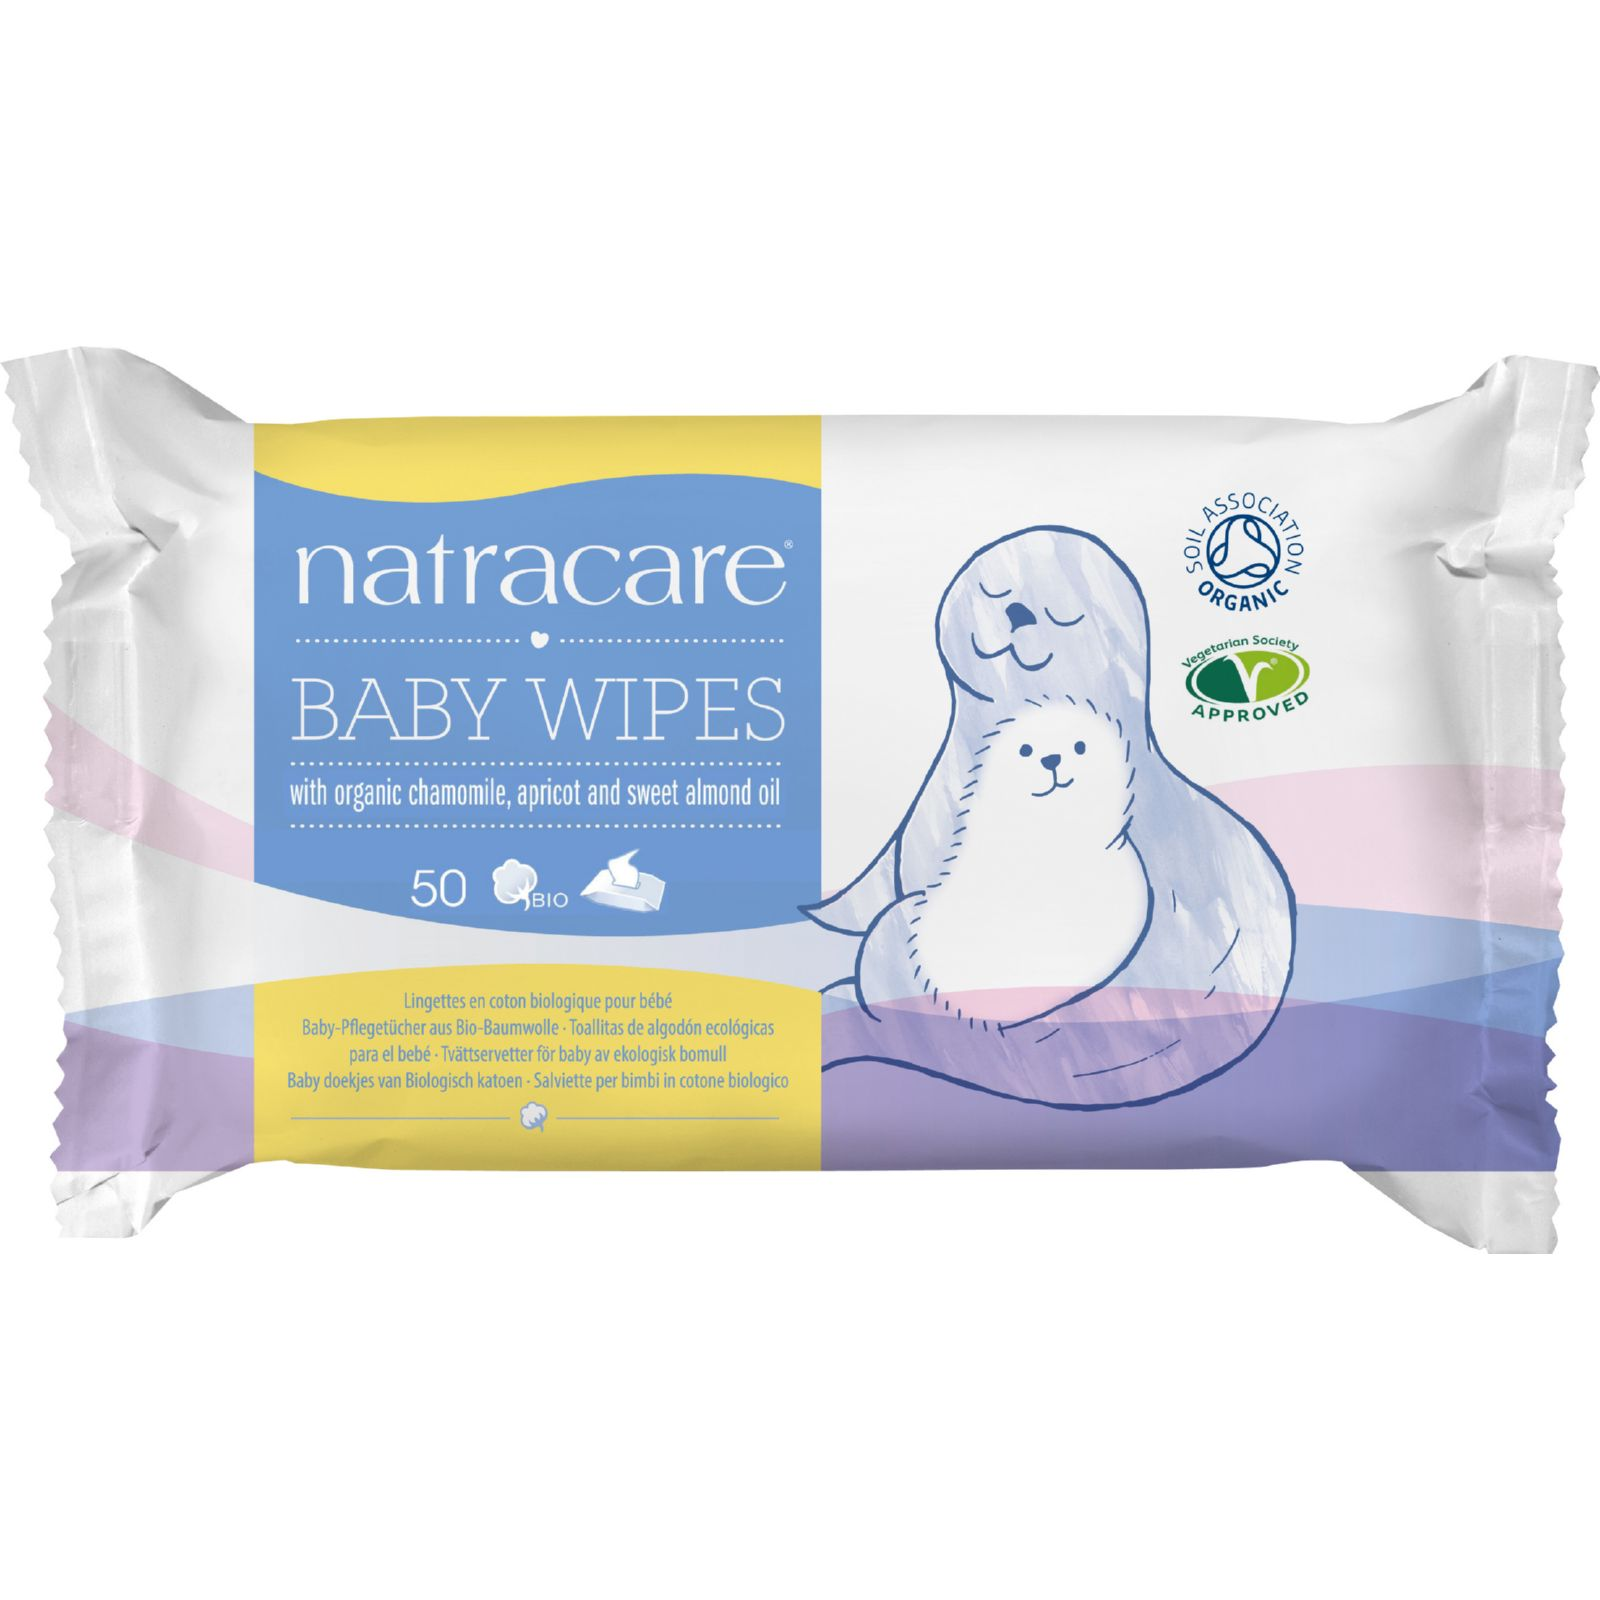 Natracare - Organic Cotton Baby Wipes, 50 count